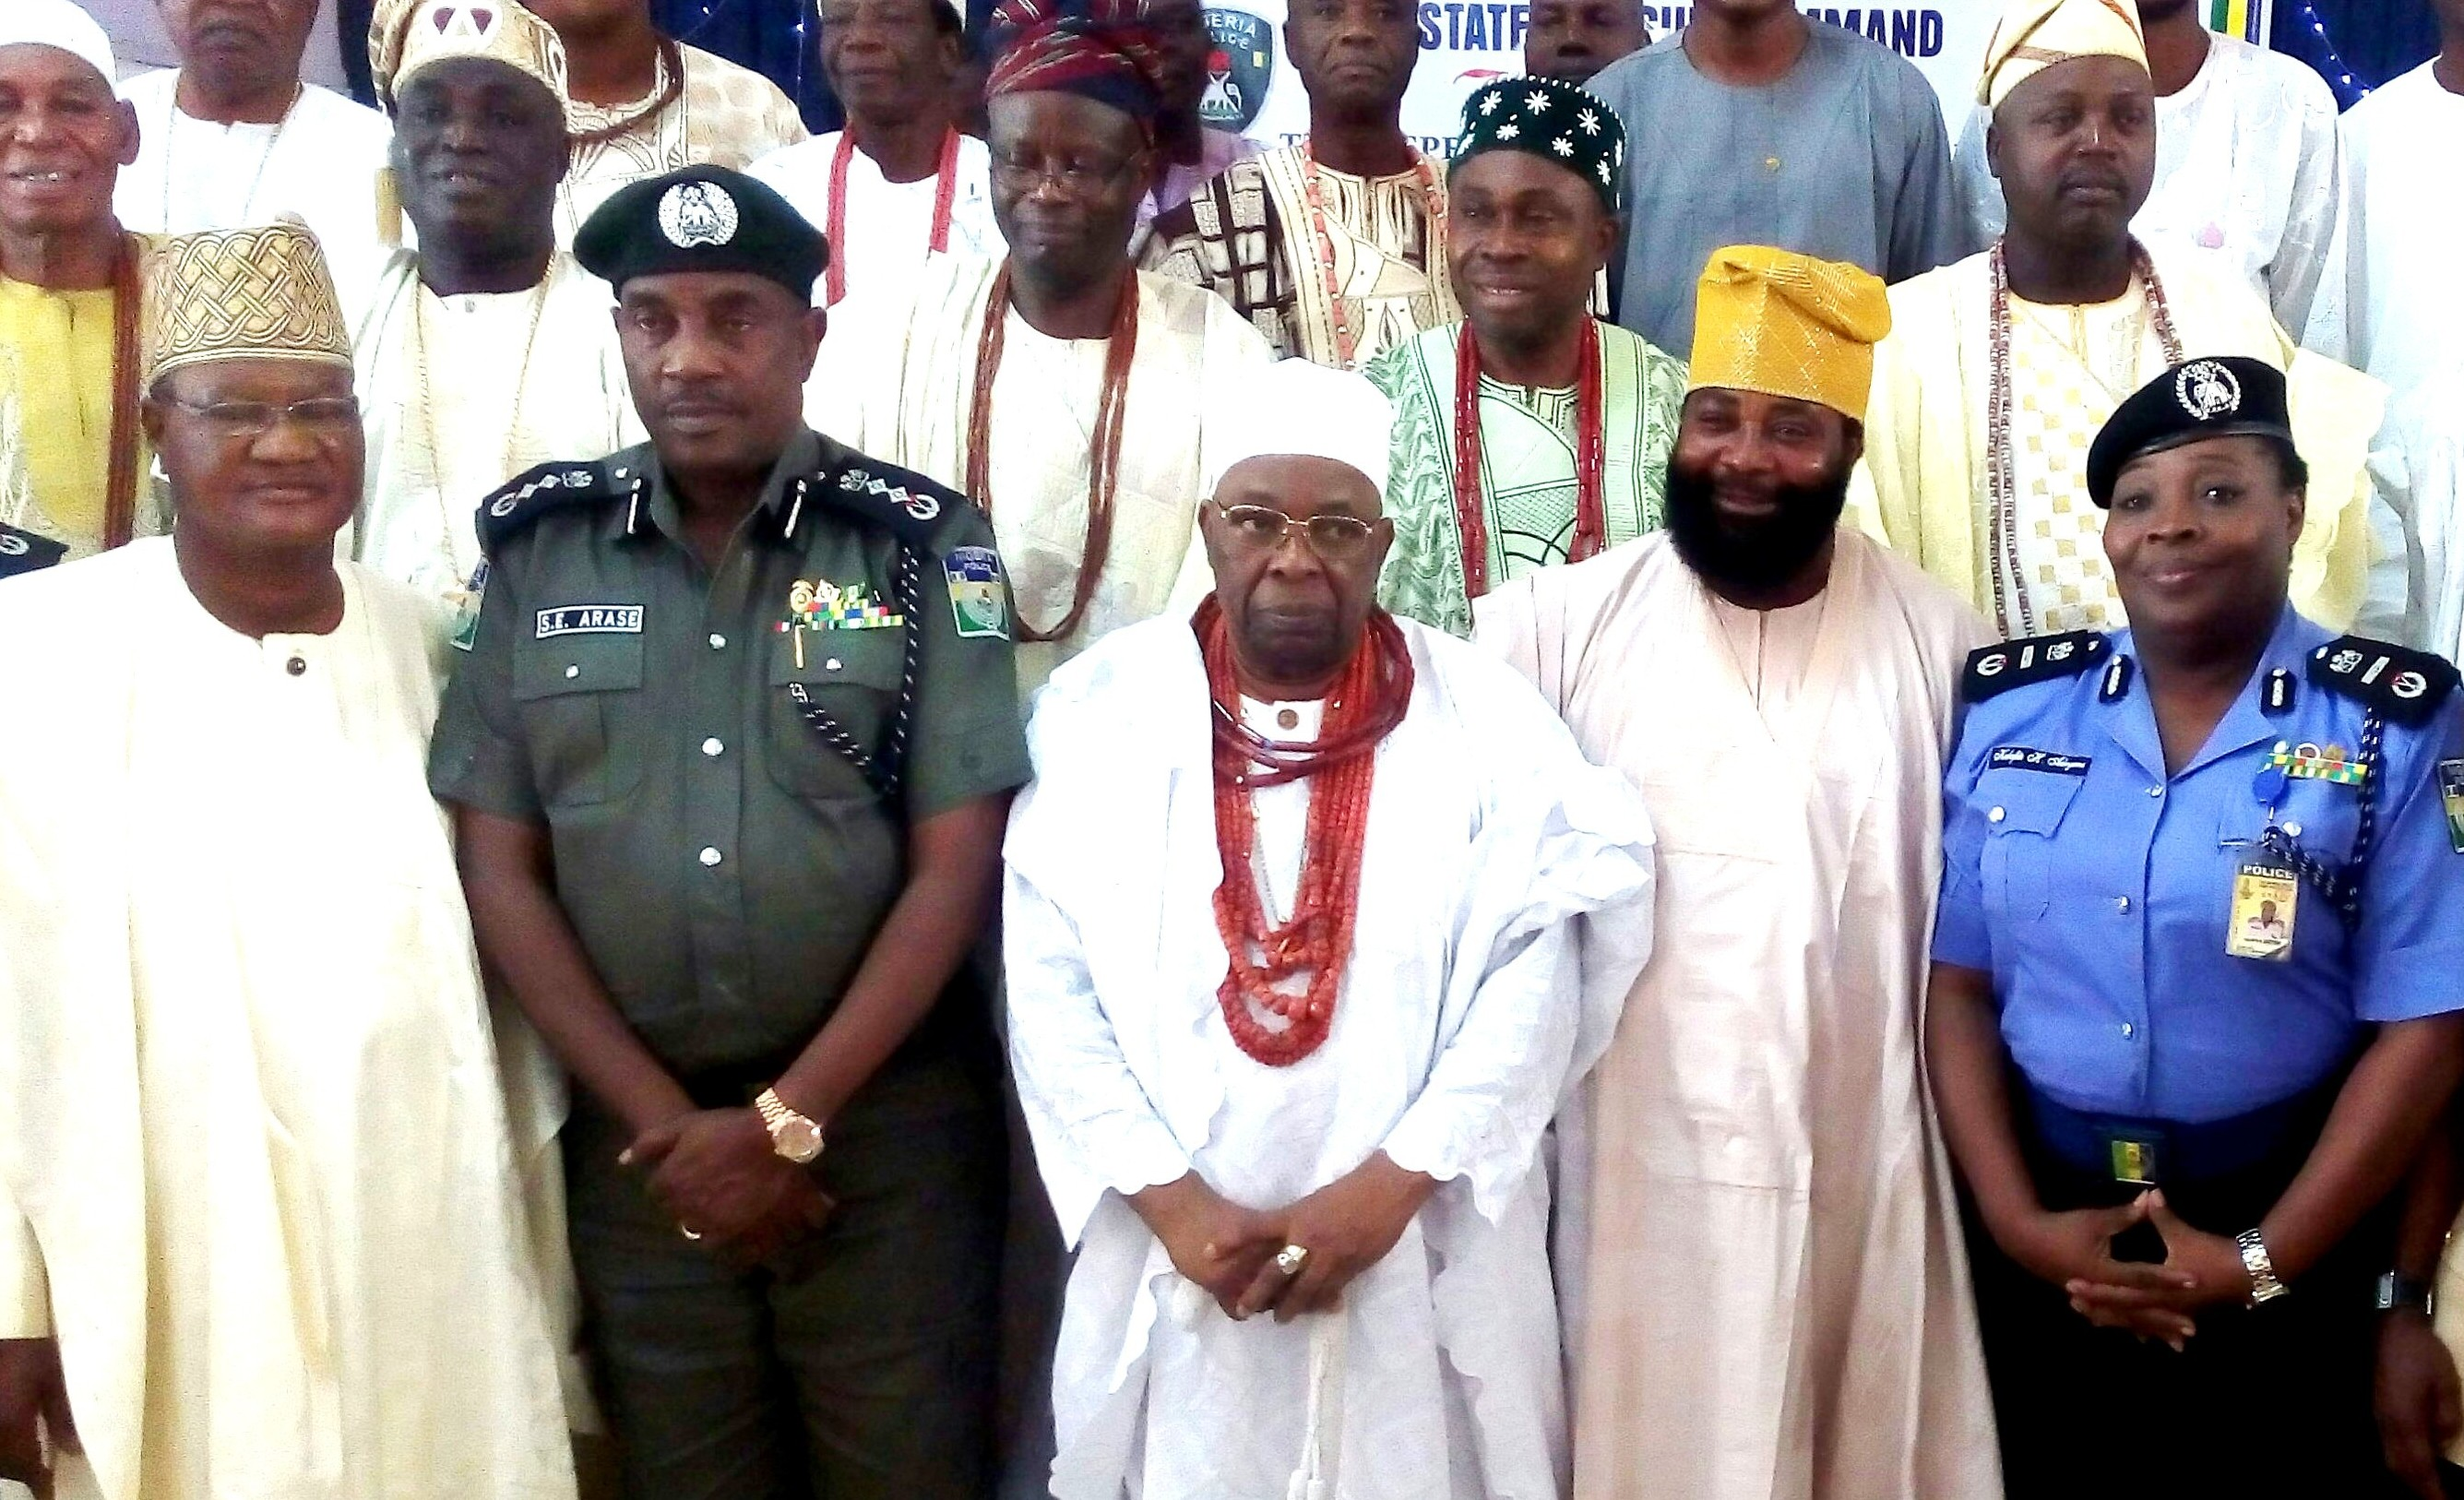 South West Zonal Chairman of the Police Community Relations Committee (PCRC), Otunba Femi Arowosola; Inspector General of Police (IGP), Solomon Arase; the Owa Obokun of Ijeshaland, Oba Adekunle Aromolaran;Osun State Chairman of CPRC, Comrade Amitolu Shittu; Assistant Inspector General of Police, Mrs Adeyemi Kalafite and others, after a meeting, during a recent familiarization tour by the IG at Osogbo, the State capital of Osun